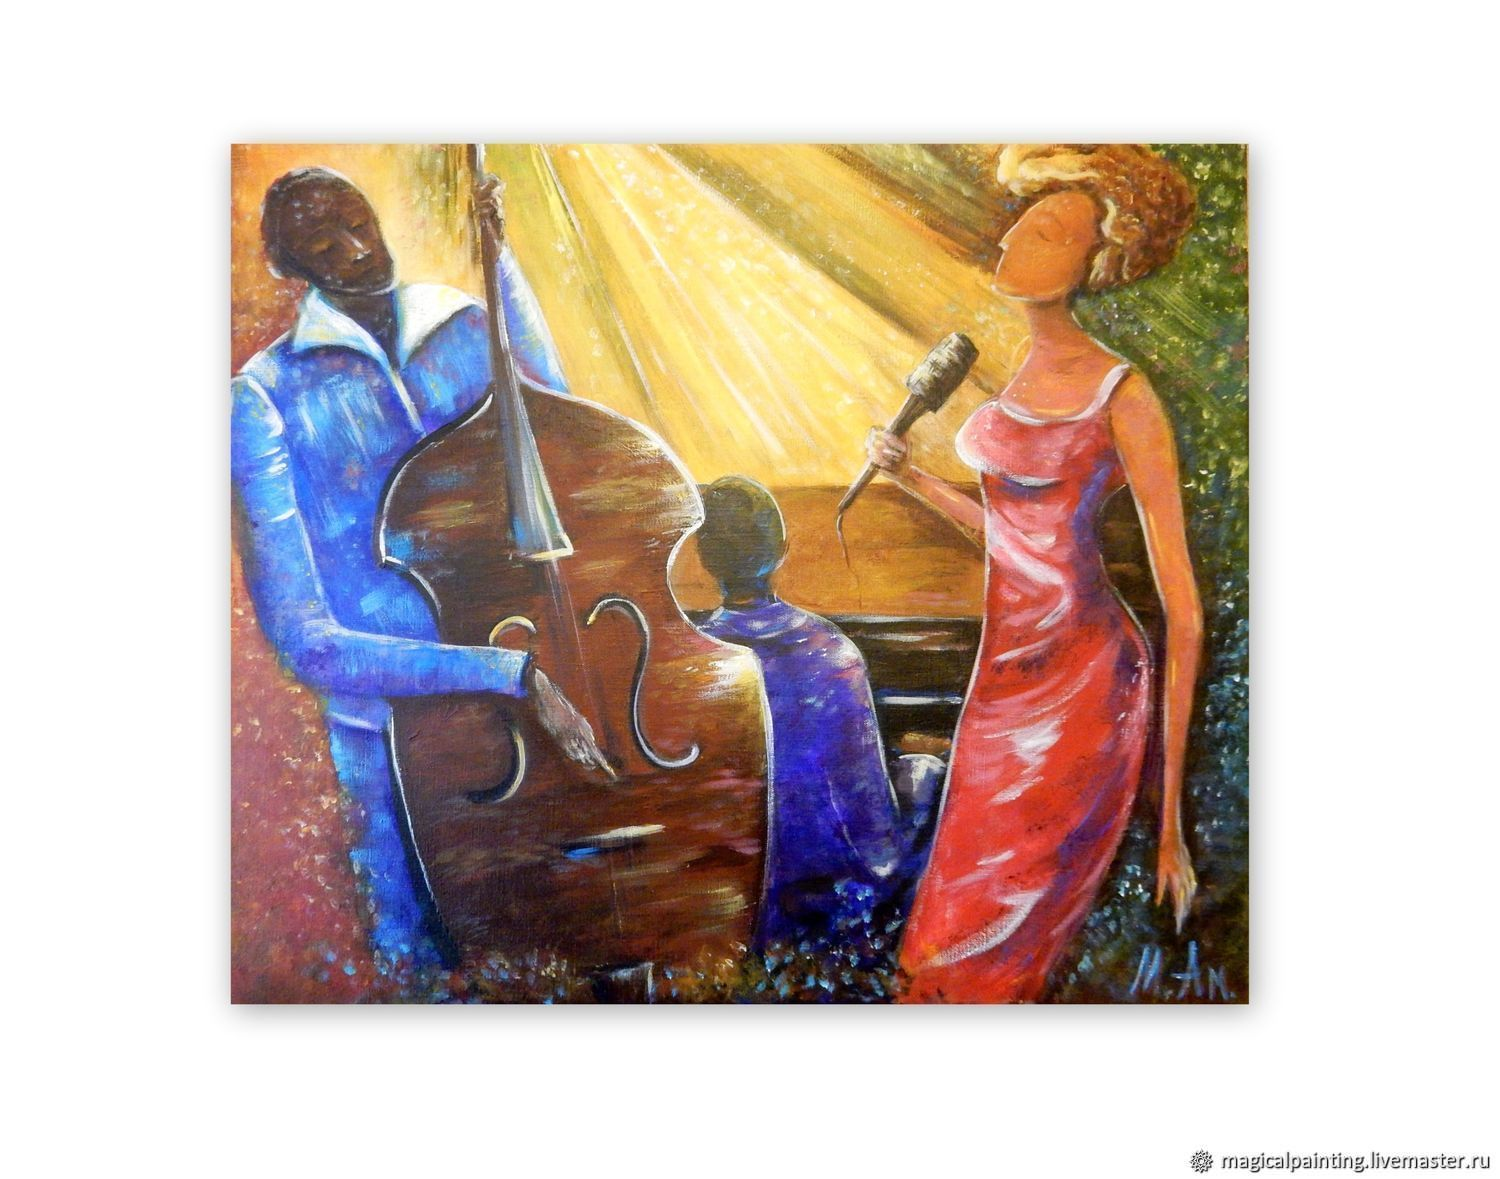 Interior painting 'jazz' 60 by 70 cm, Pictures, St. Petersburg,  Фото №1